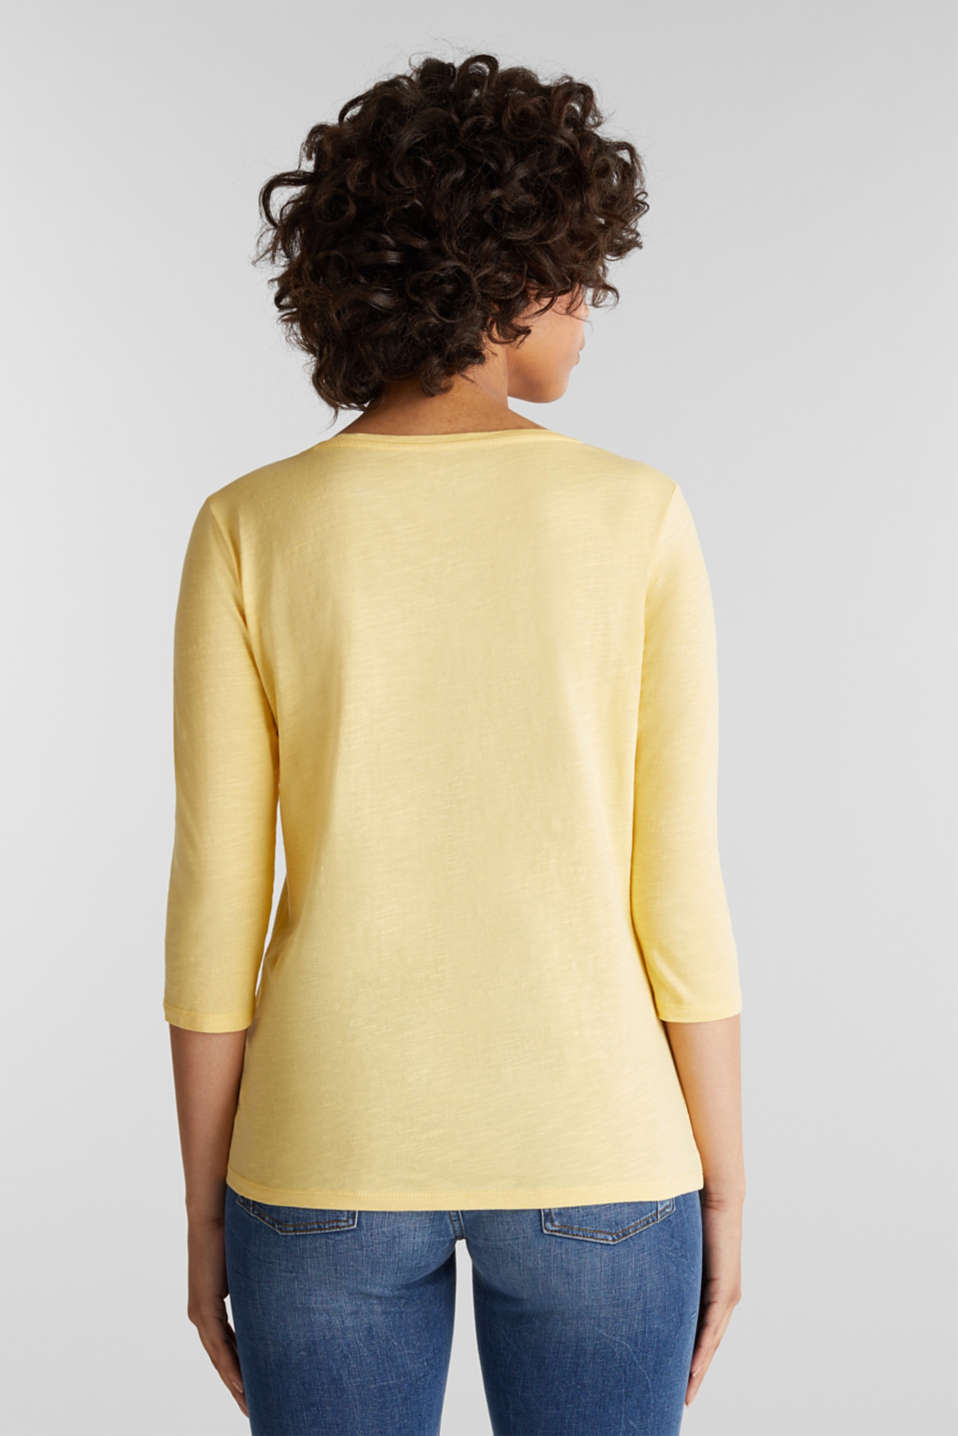 Cotton top, 3/4 sleeves, LIGHT YELLOW, detail image number 3